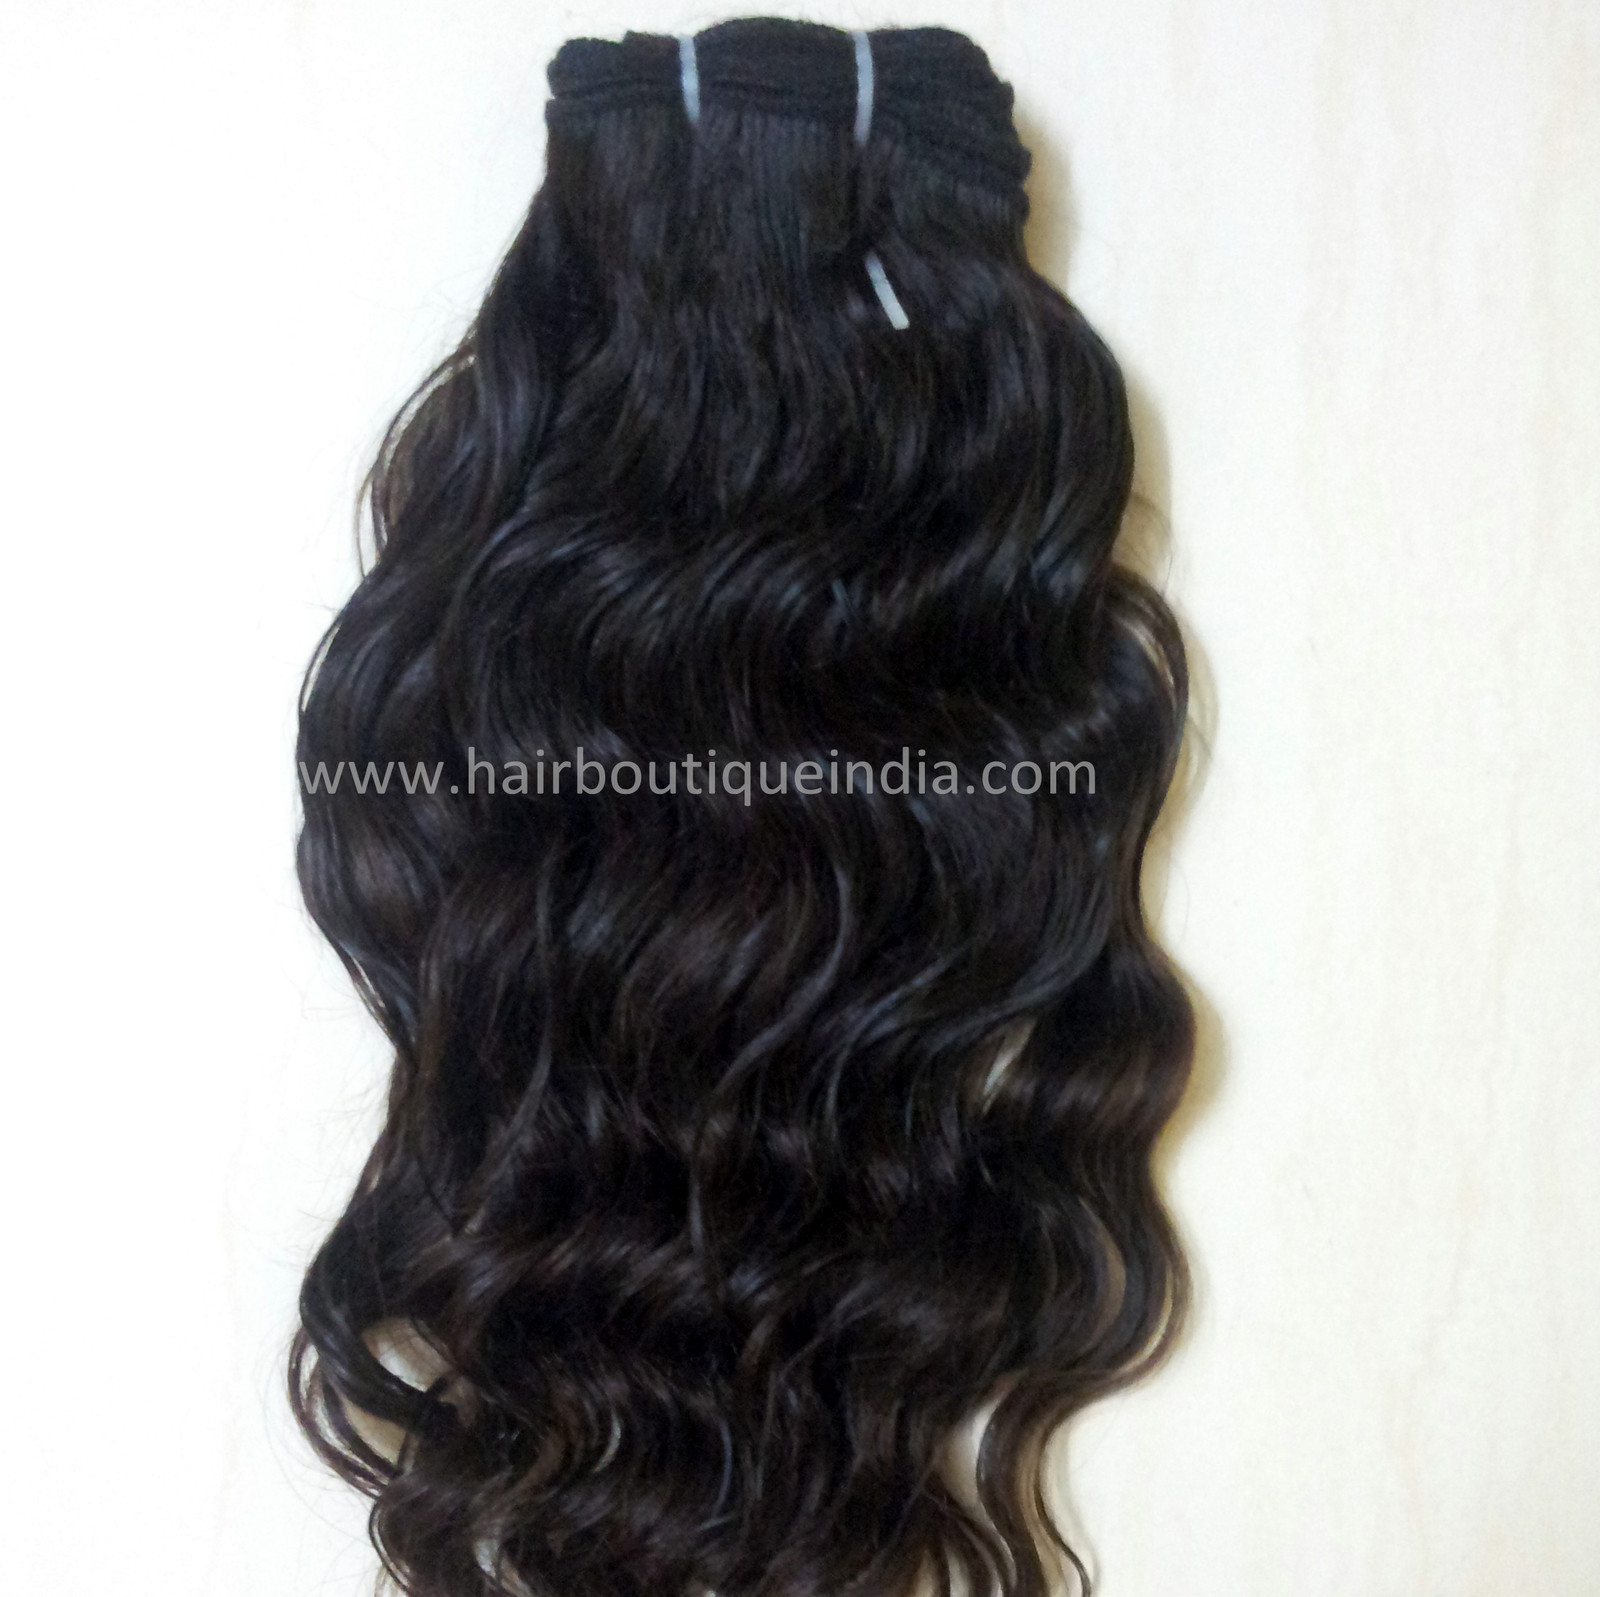 Raw Human Hair Wholesale Indian Hairvirgin Remy Indian Hair Supplier